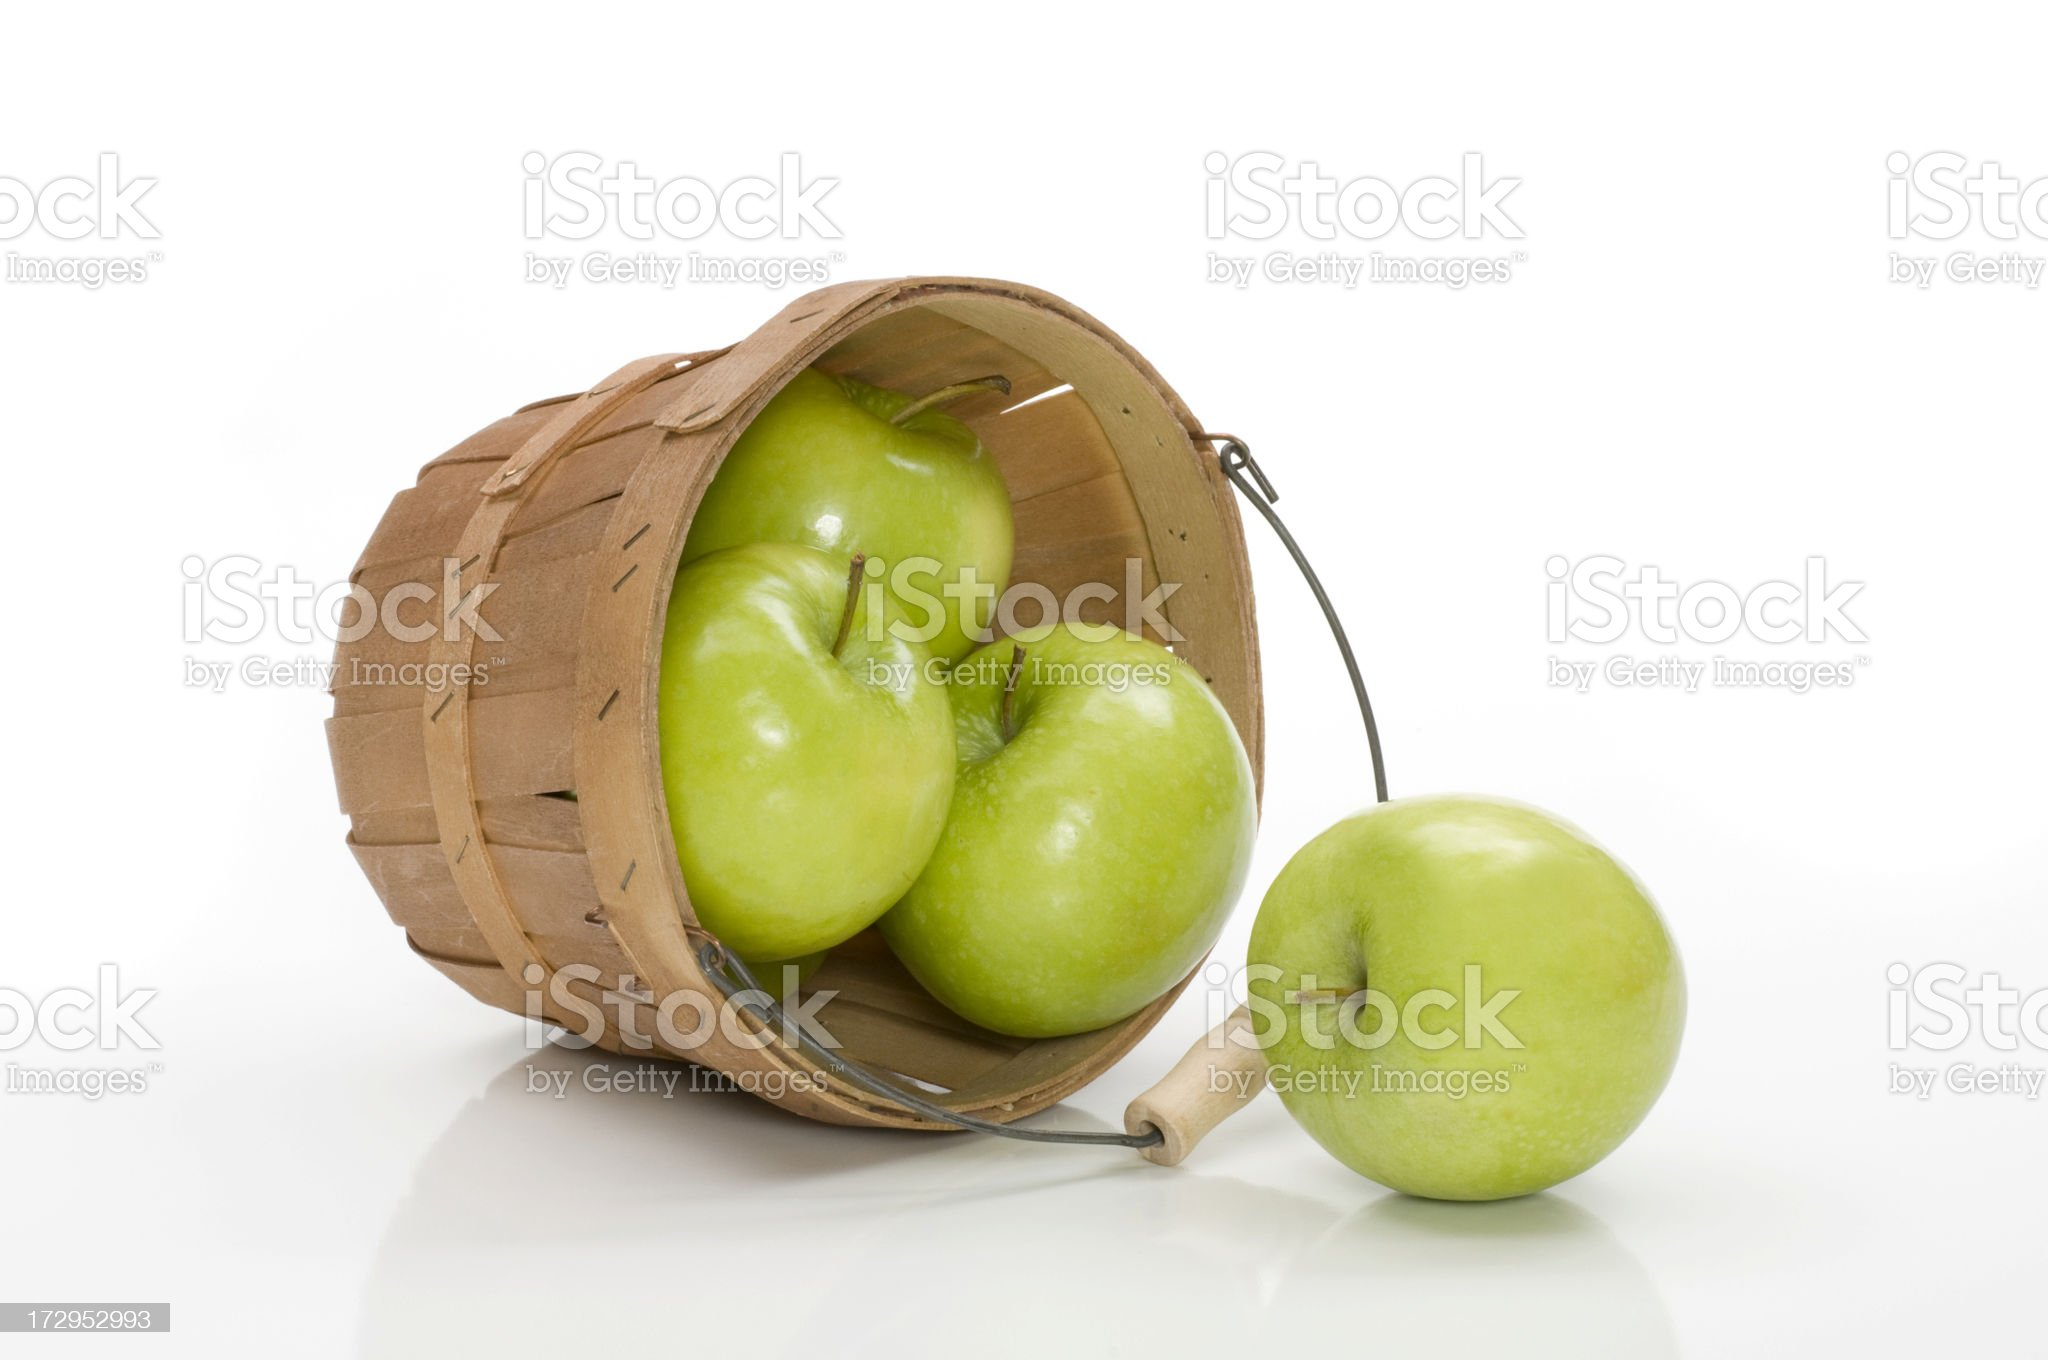 spilled green apples from basket royalty-free stock photo